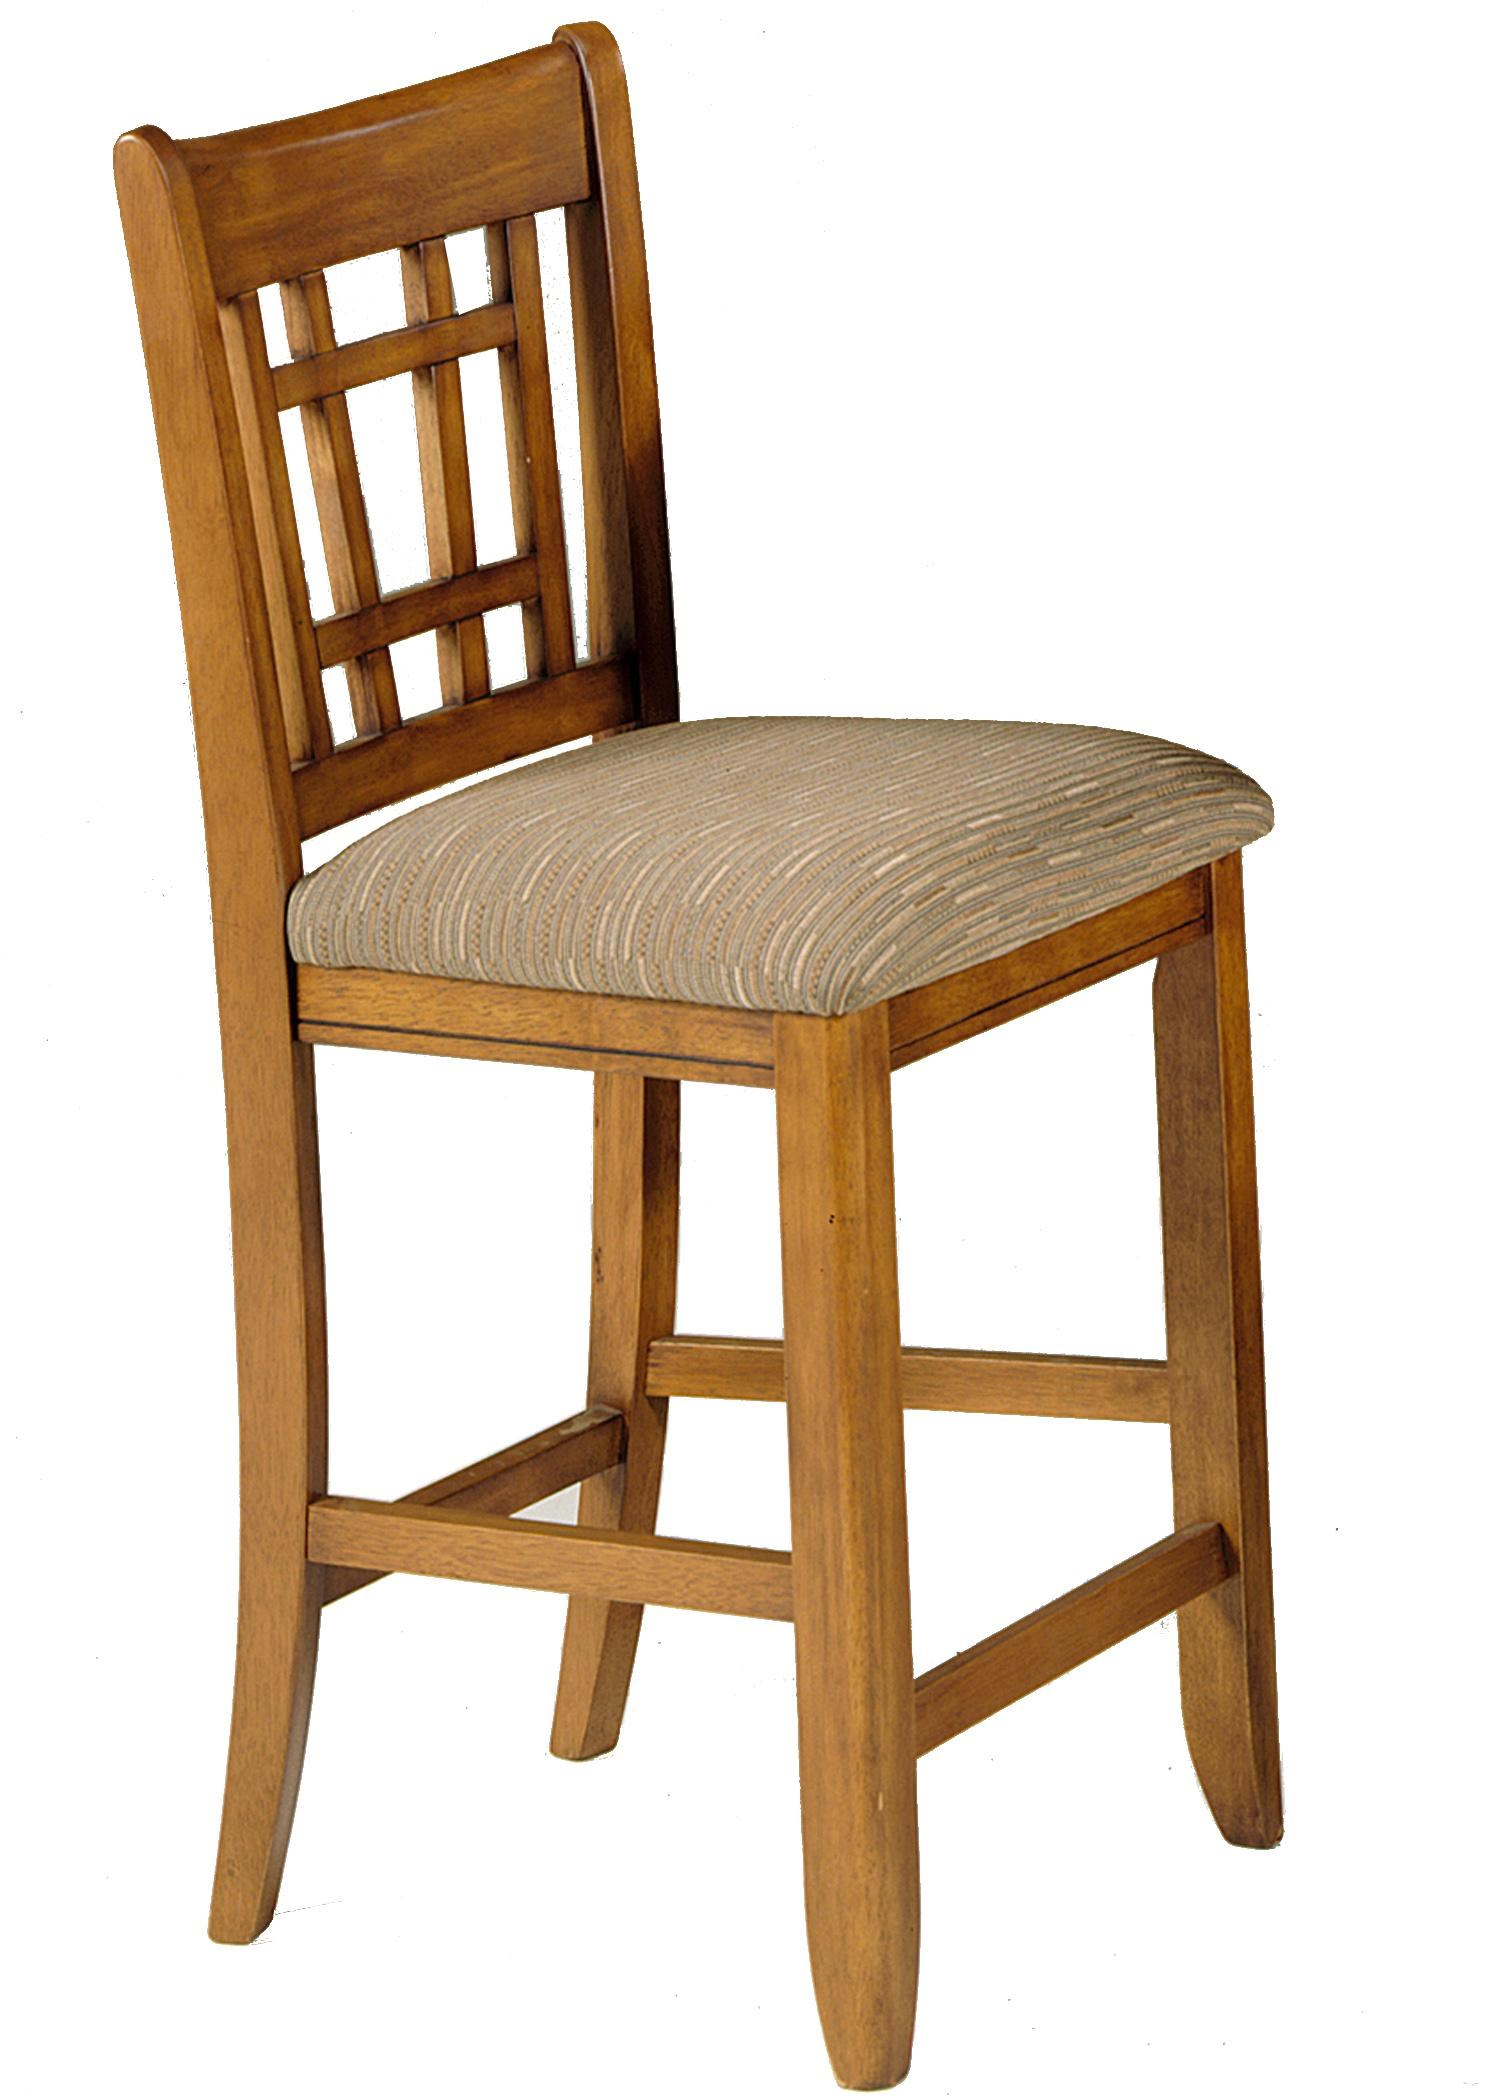 Bar Stool Chairs Santa Rosa 30 Inch Mission Bar Stool By Liberty Furniture At Furniture And Appliancemart